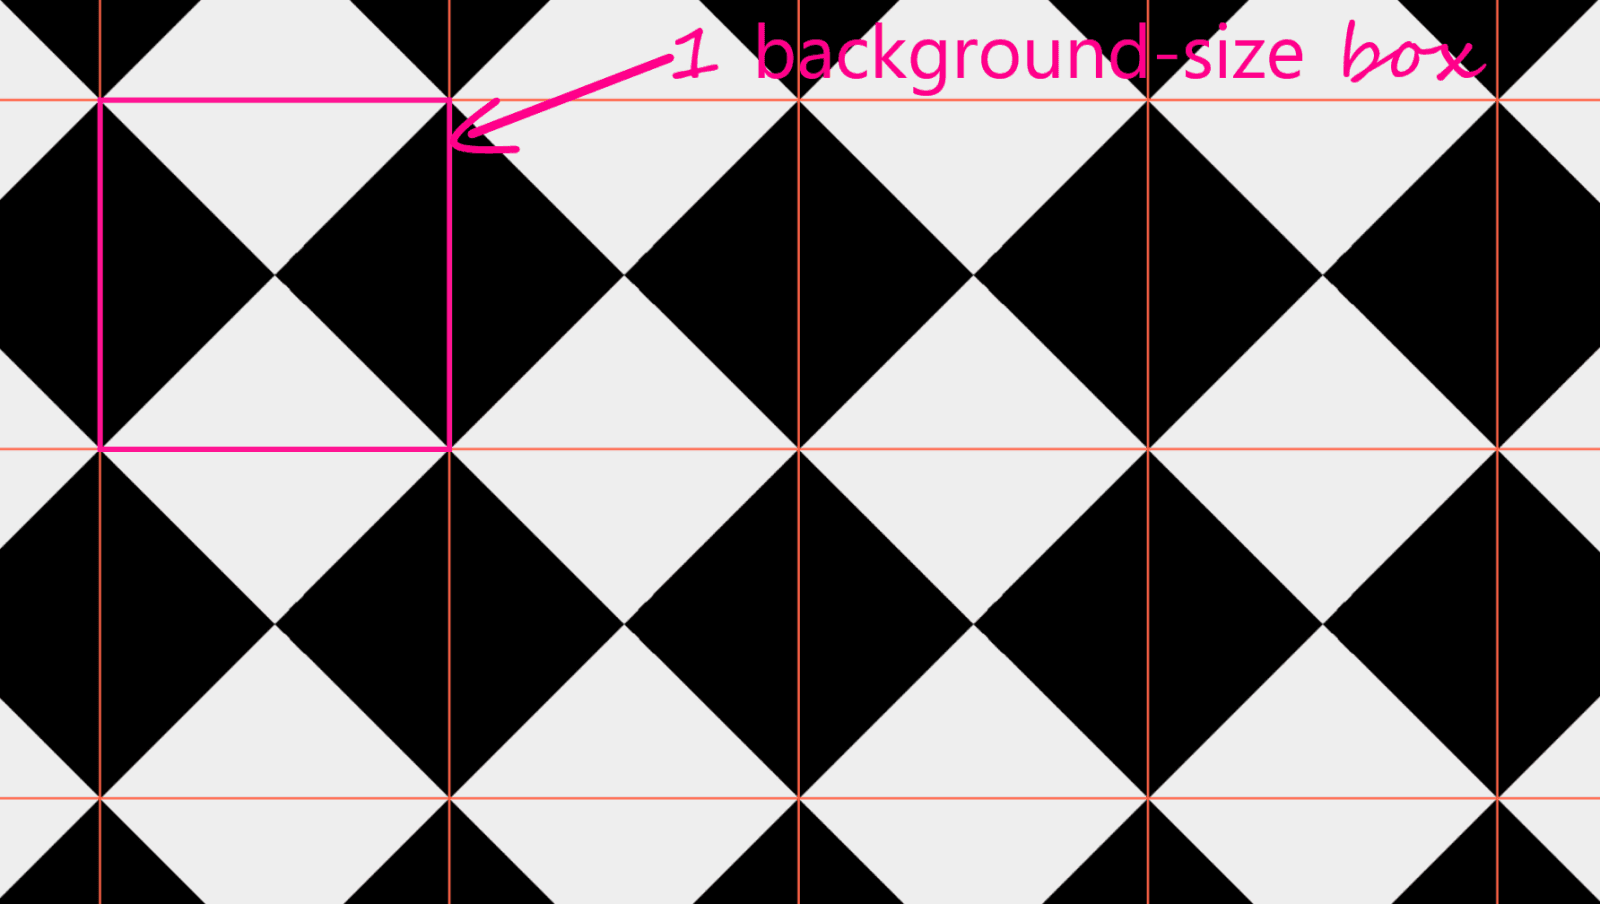 Annotated screenshot. Shows the rectangles (squares in this case) defined by the `background-size`.